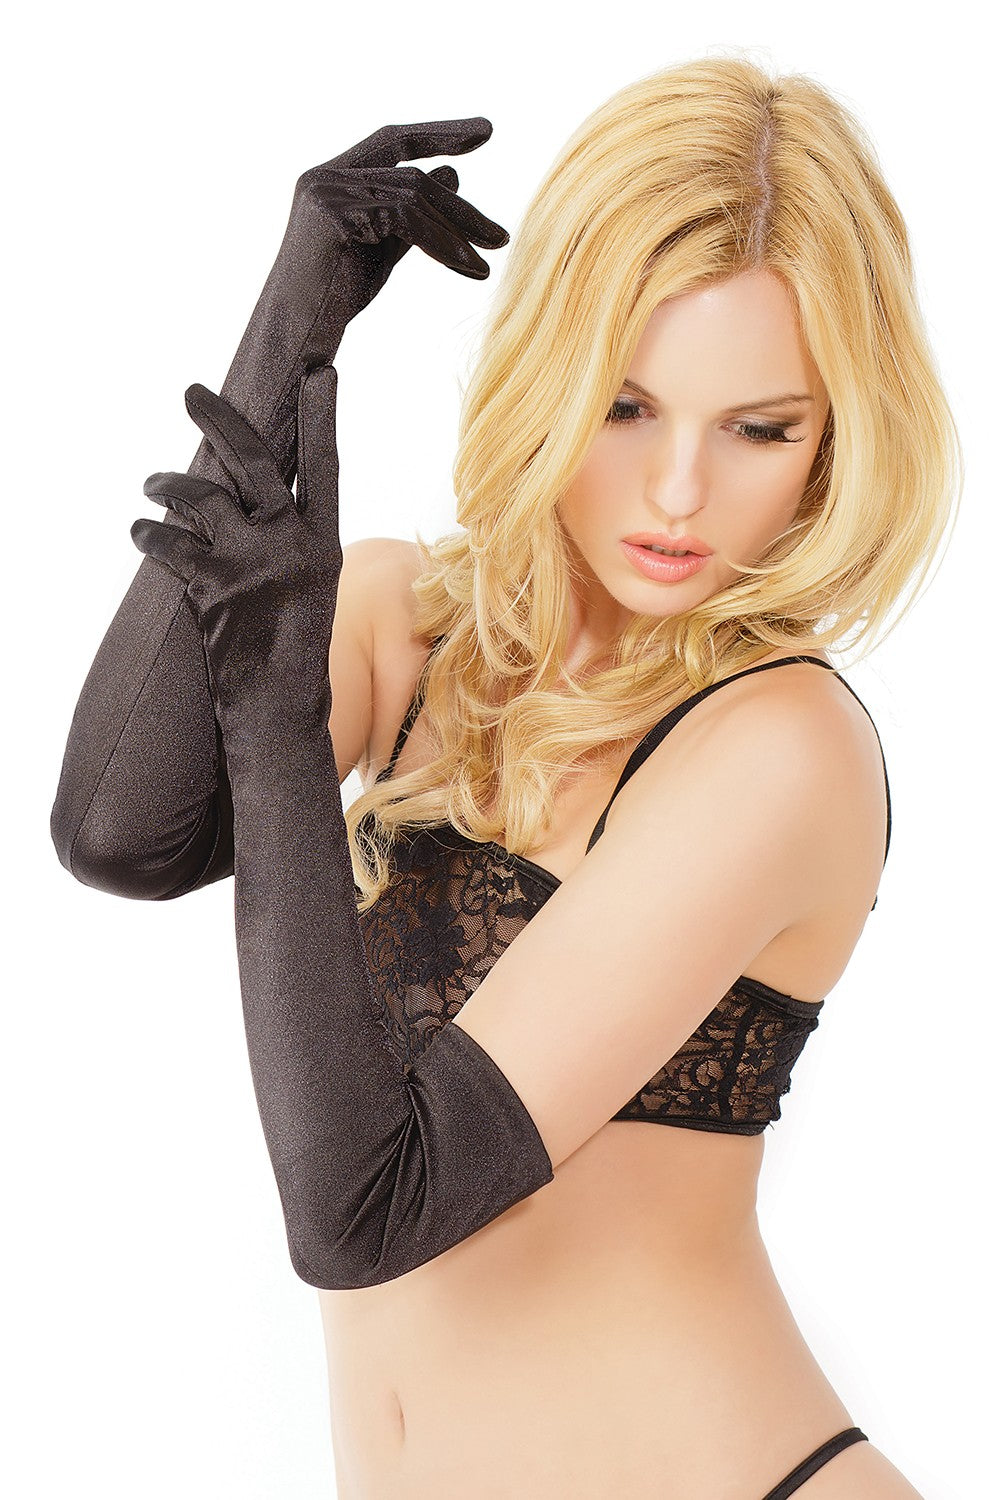 Sheer Thigh High with Grip 1750